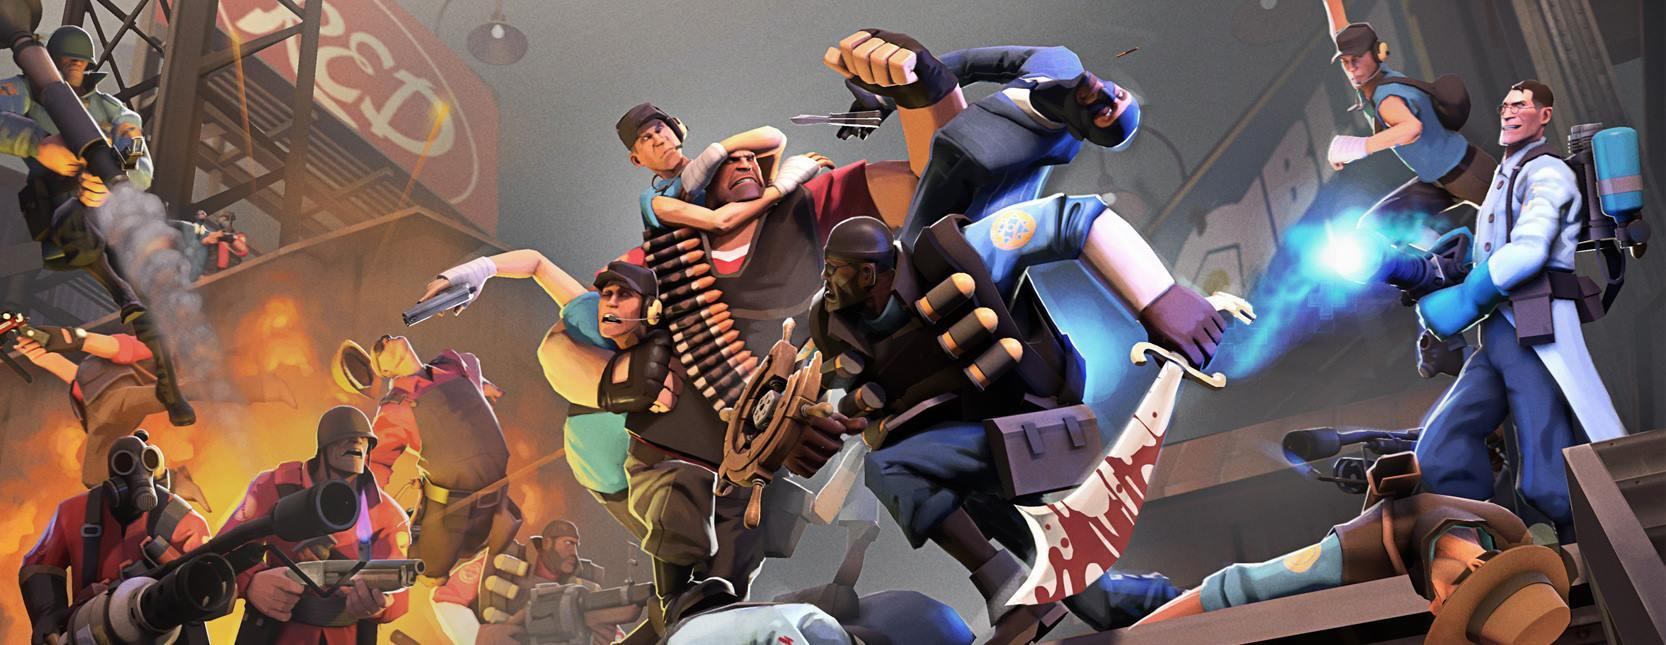 Team Fortress 2 - Friendly Games